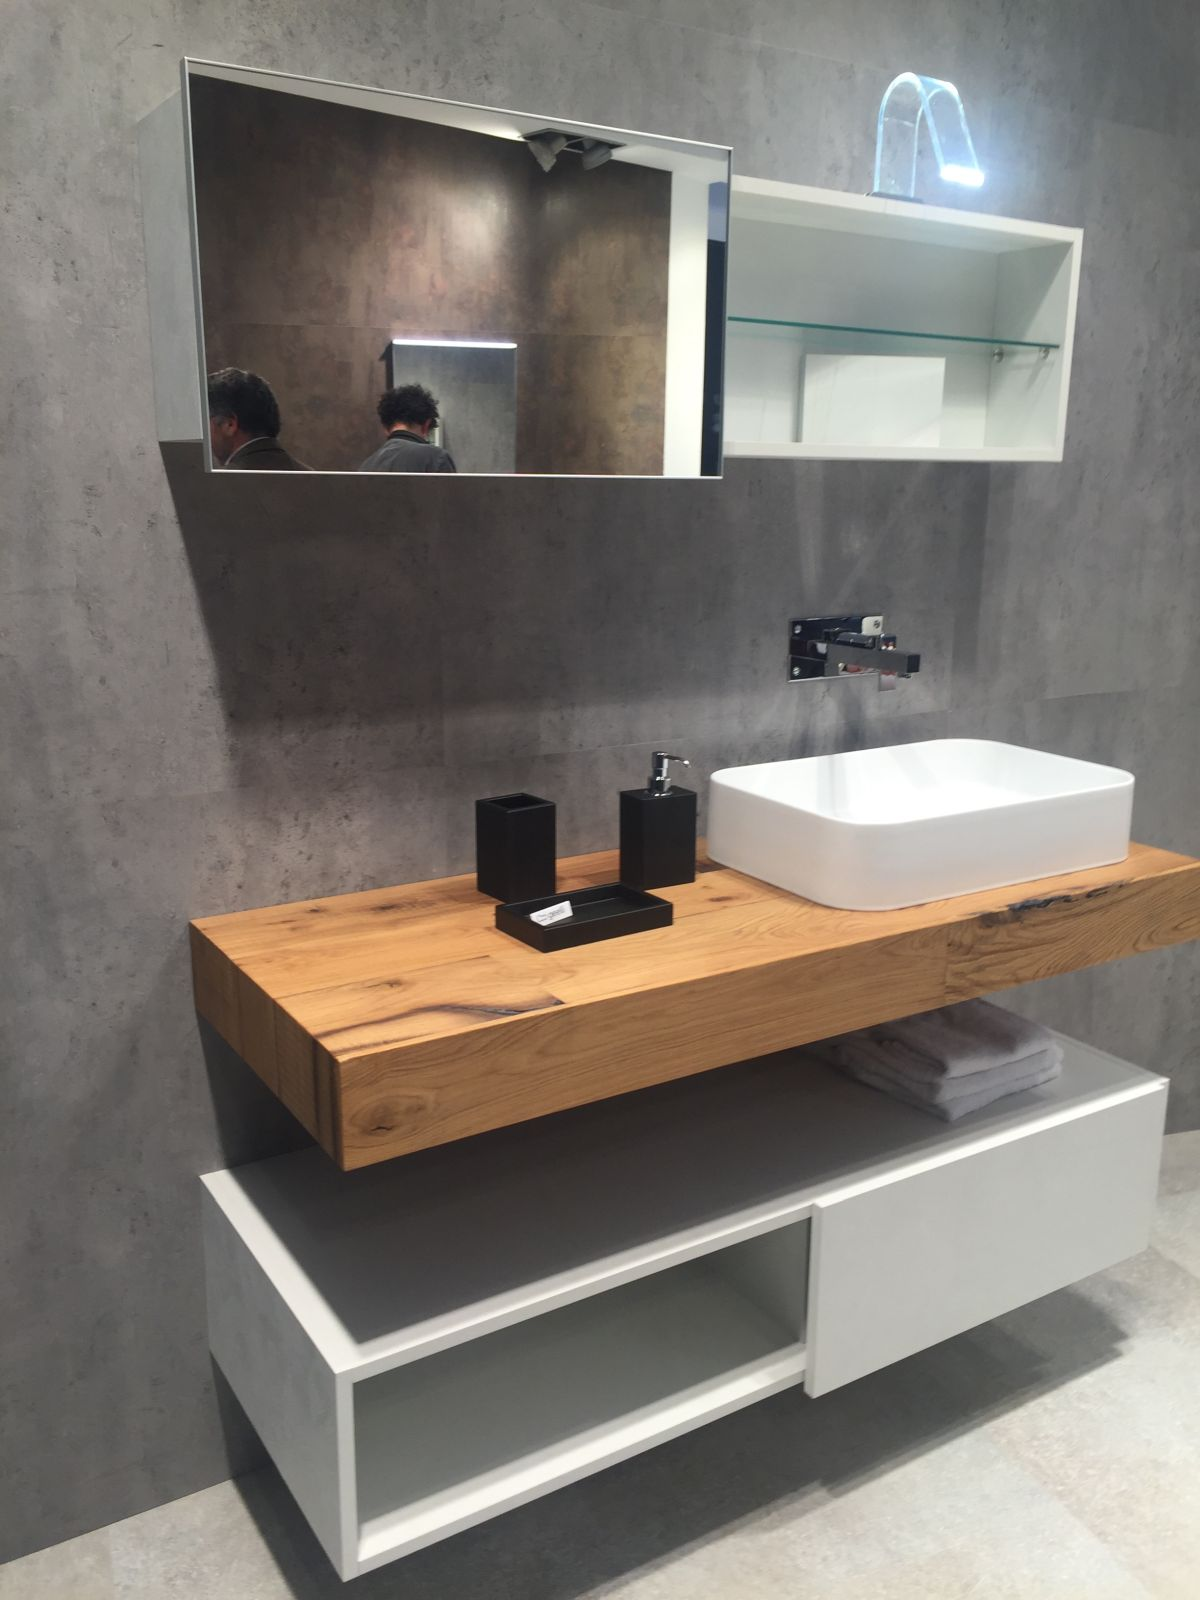 21 Bathroom Decor Concept That Bring New Concepts To Light 954bartend Info